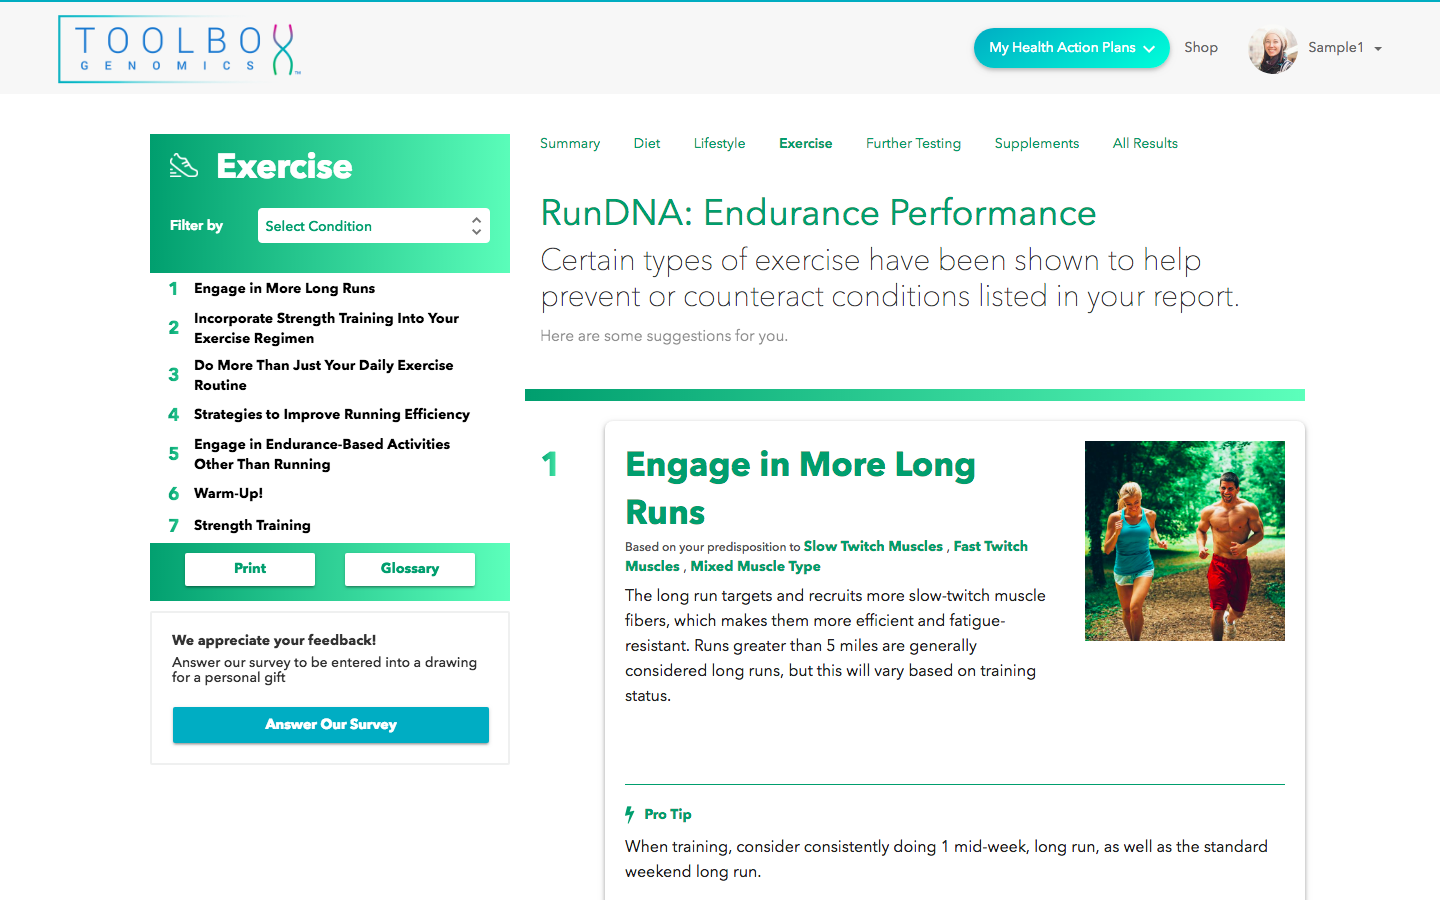 TBG Total Wellness DNA app by Toolbox Genomics available in Sequencing.com's DNA App Store provides the best genetically tailored health action plan including nutrition, fitness, vitamins and wellness guidance and is compatible with DNA data from all genetic tests including AncestryDNA, 23andMe, FTDNA, My Heritage, Genes for Good (GFG), Helix, All Of Us, Dante Labs, Illumina, Living DNA and genome sequencing